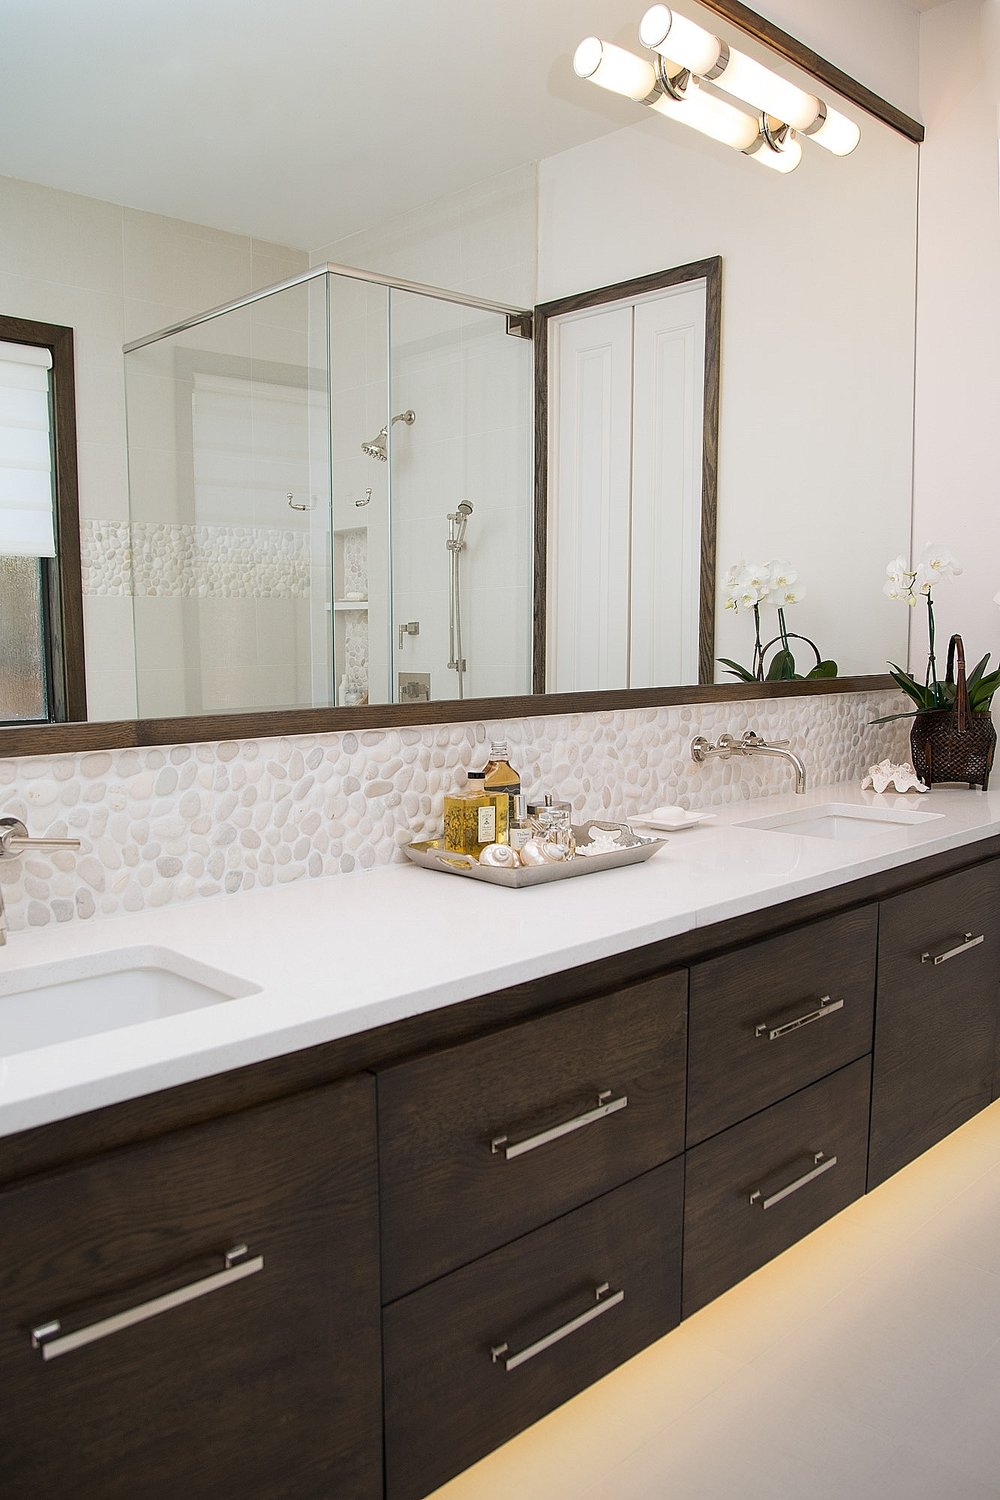 Bathroom Slab Mirror Running End Wall To End Wall | Designer: Carla Aston,  Photographer